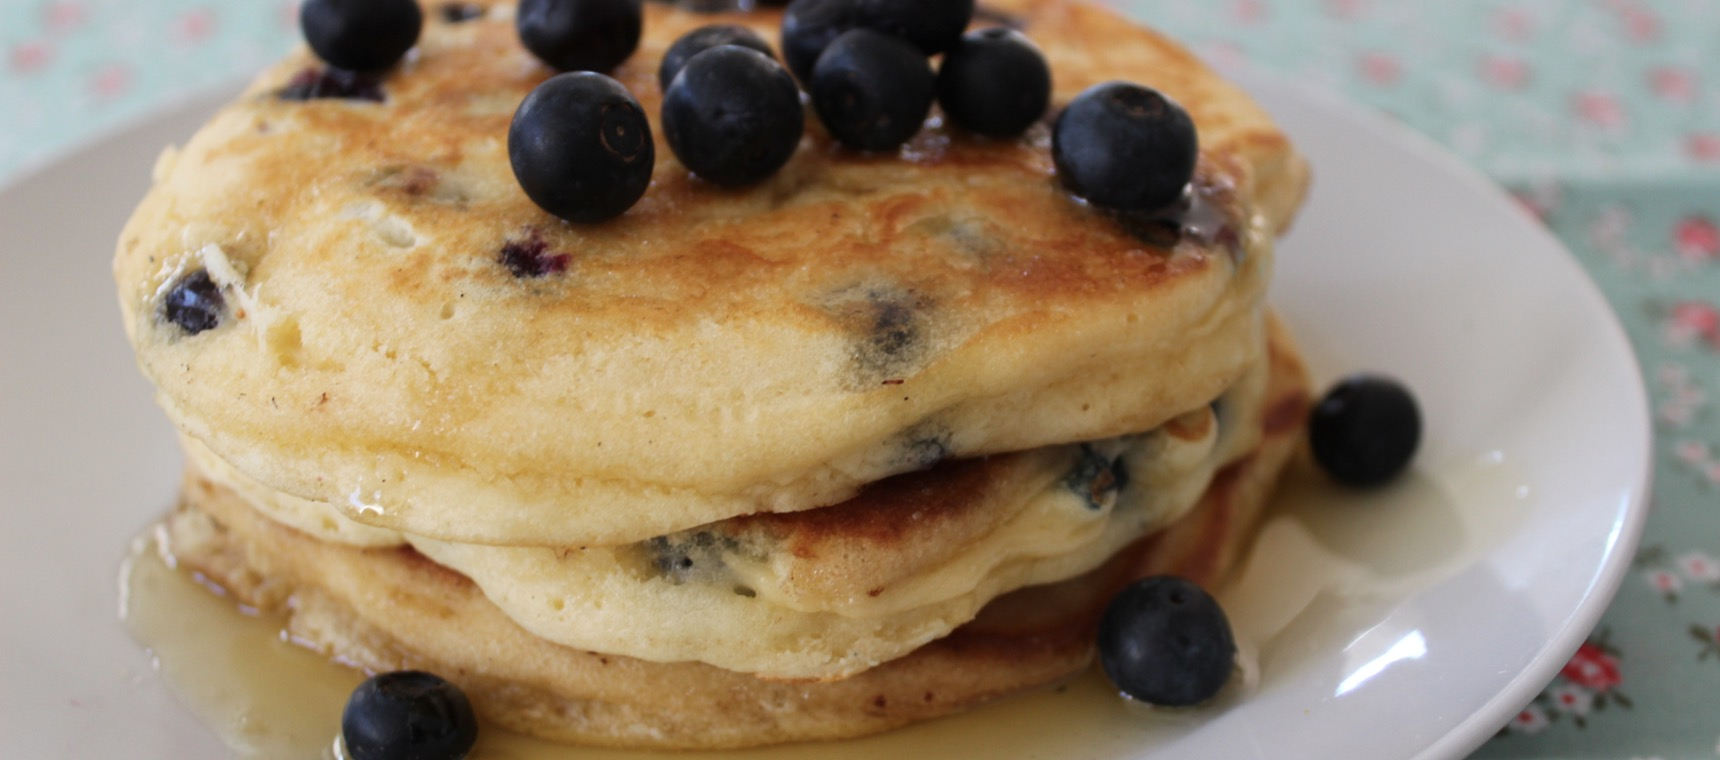 Blueberry Buttermilk Pancakes – The 4 Blades